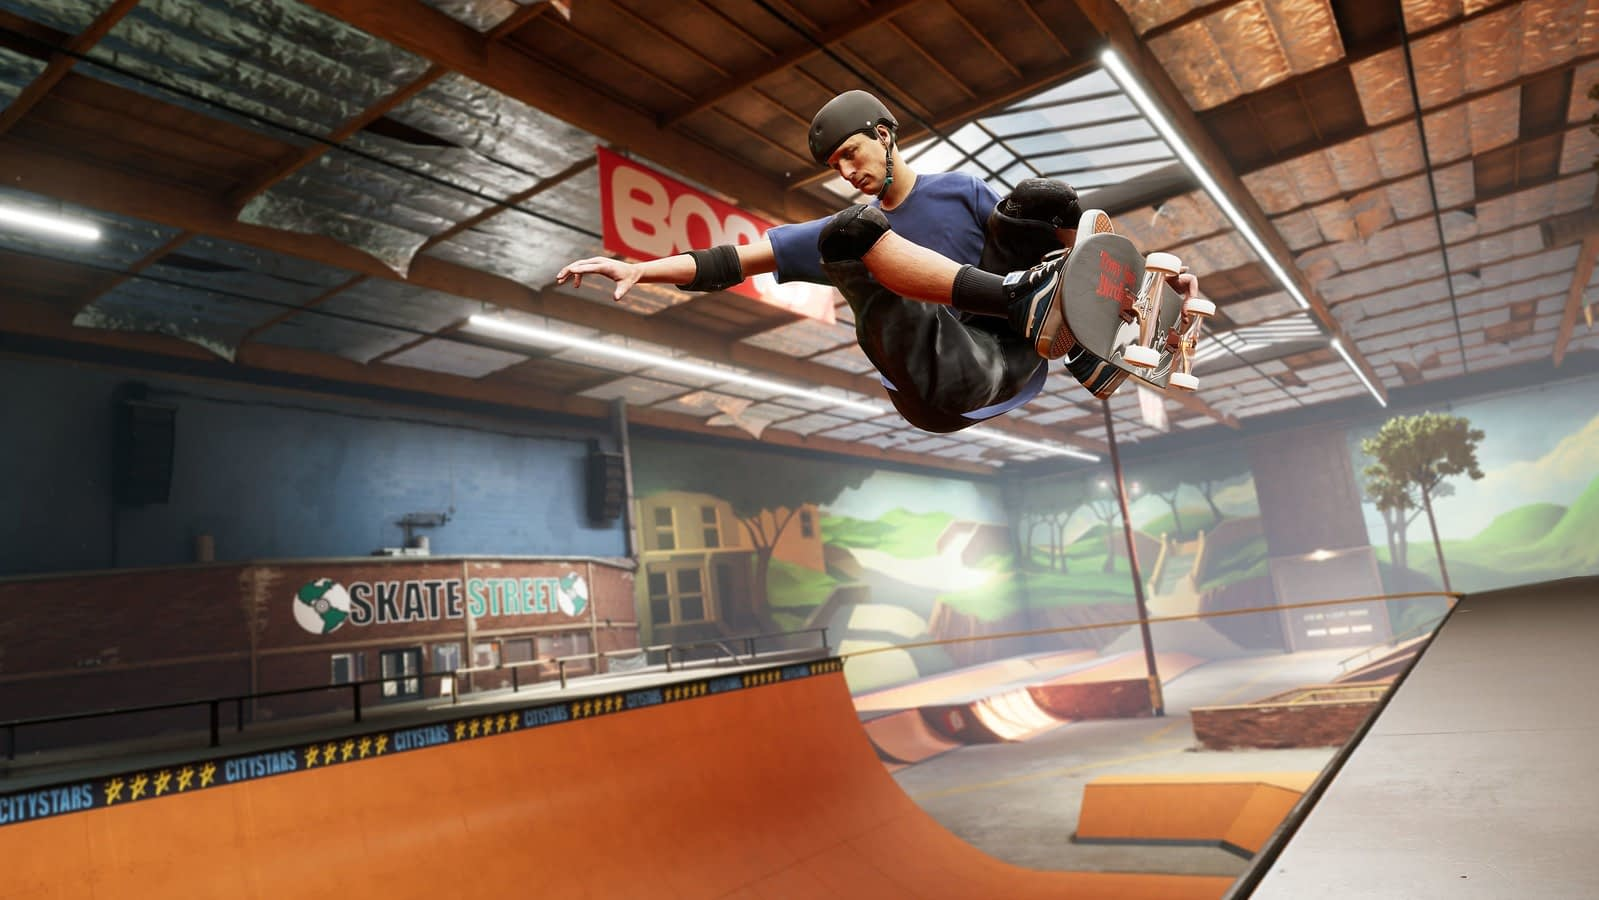 Tony Hawk's Pro Skater 1 + 2 – coming to PS5 on March 26 1